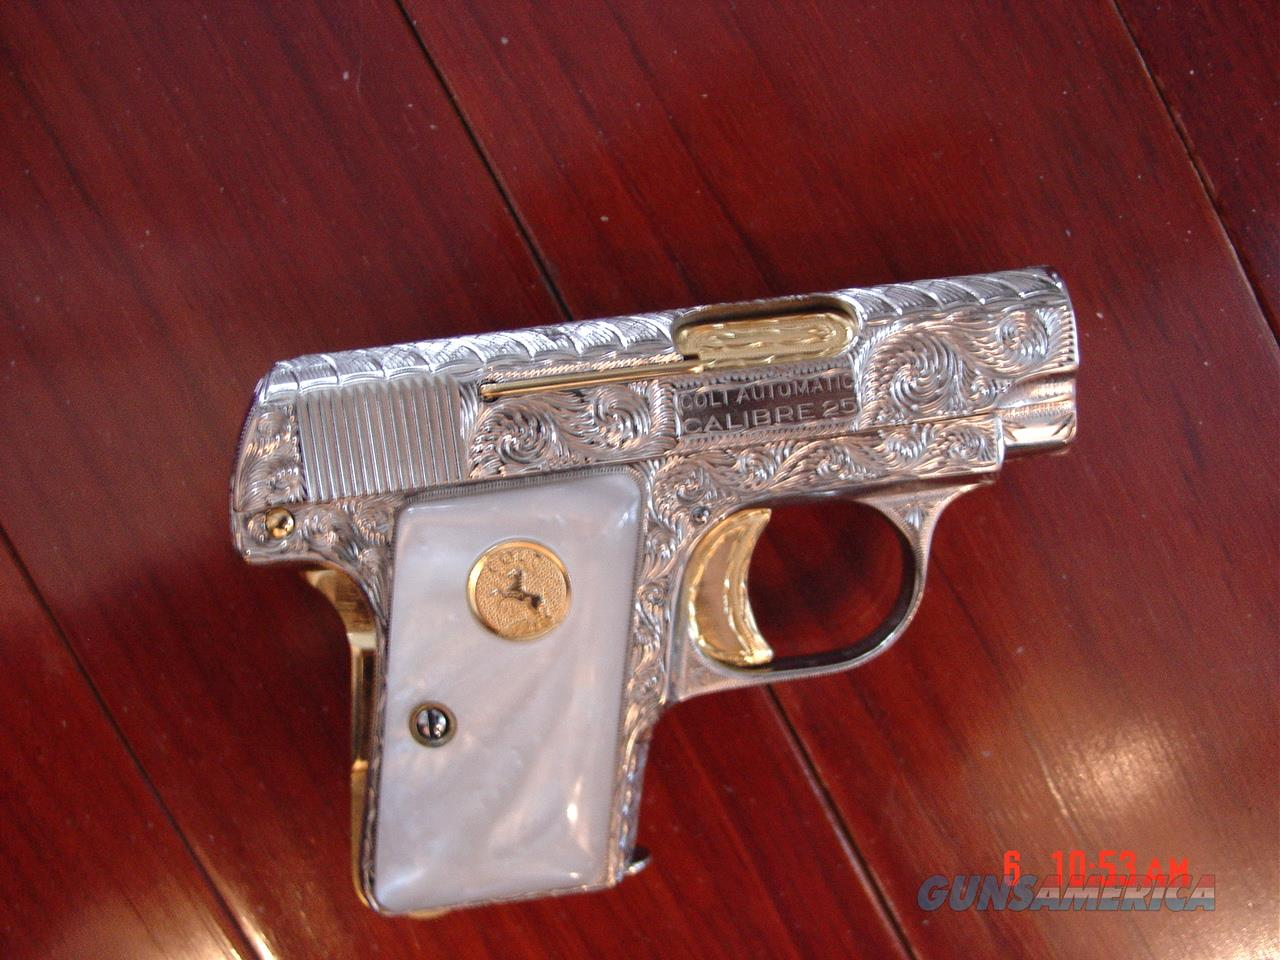 Colt 1908 Vest Pocket,fully refinished in bright nickel with gold accents & fully engraved by Flannery Engraving,25 cal,made in 1922-a true masterpiece work of art !!  Guns > Pistols > Colt Automatic Pistols (.25, .32, & .380 cal)